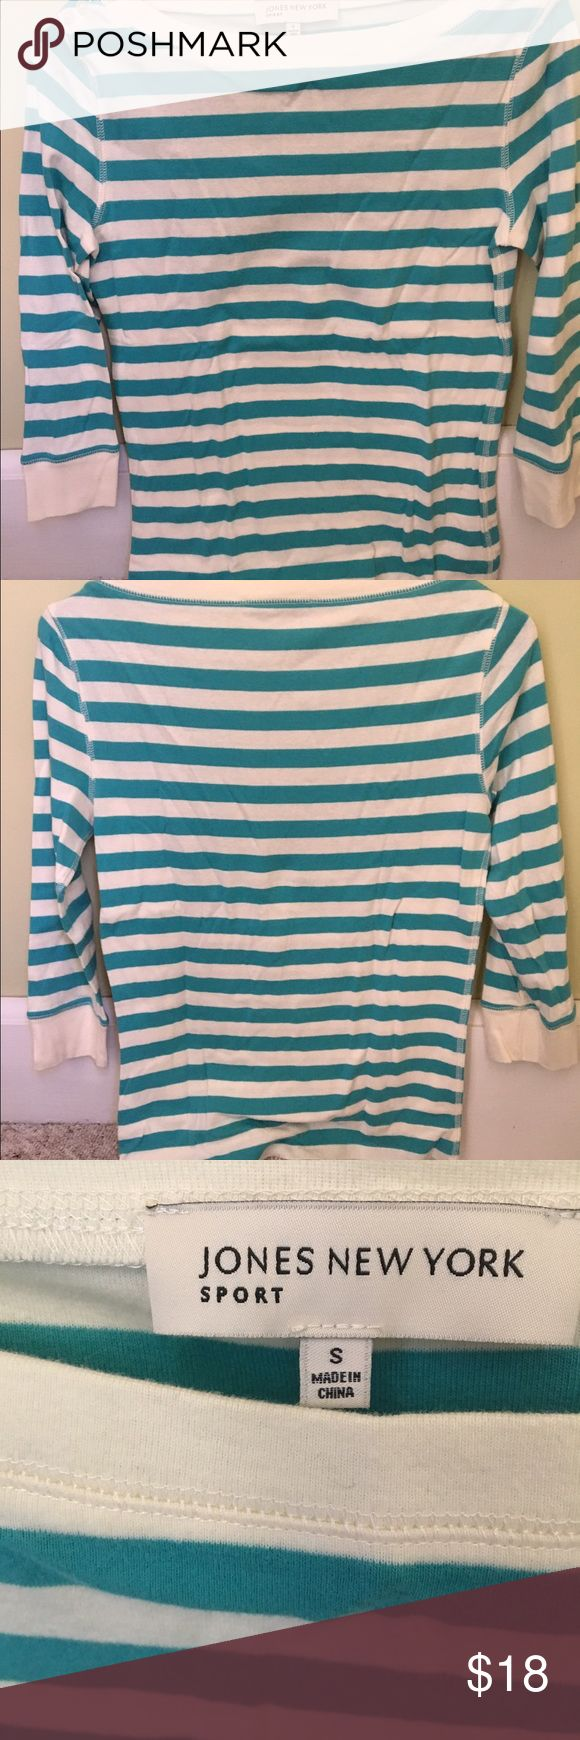 Jones New York Sport Women's Top Brand New, Never Worn, Excellent Quality. Adorable and Nautical looking. Jones New York Tops